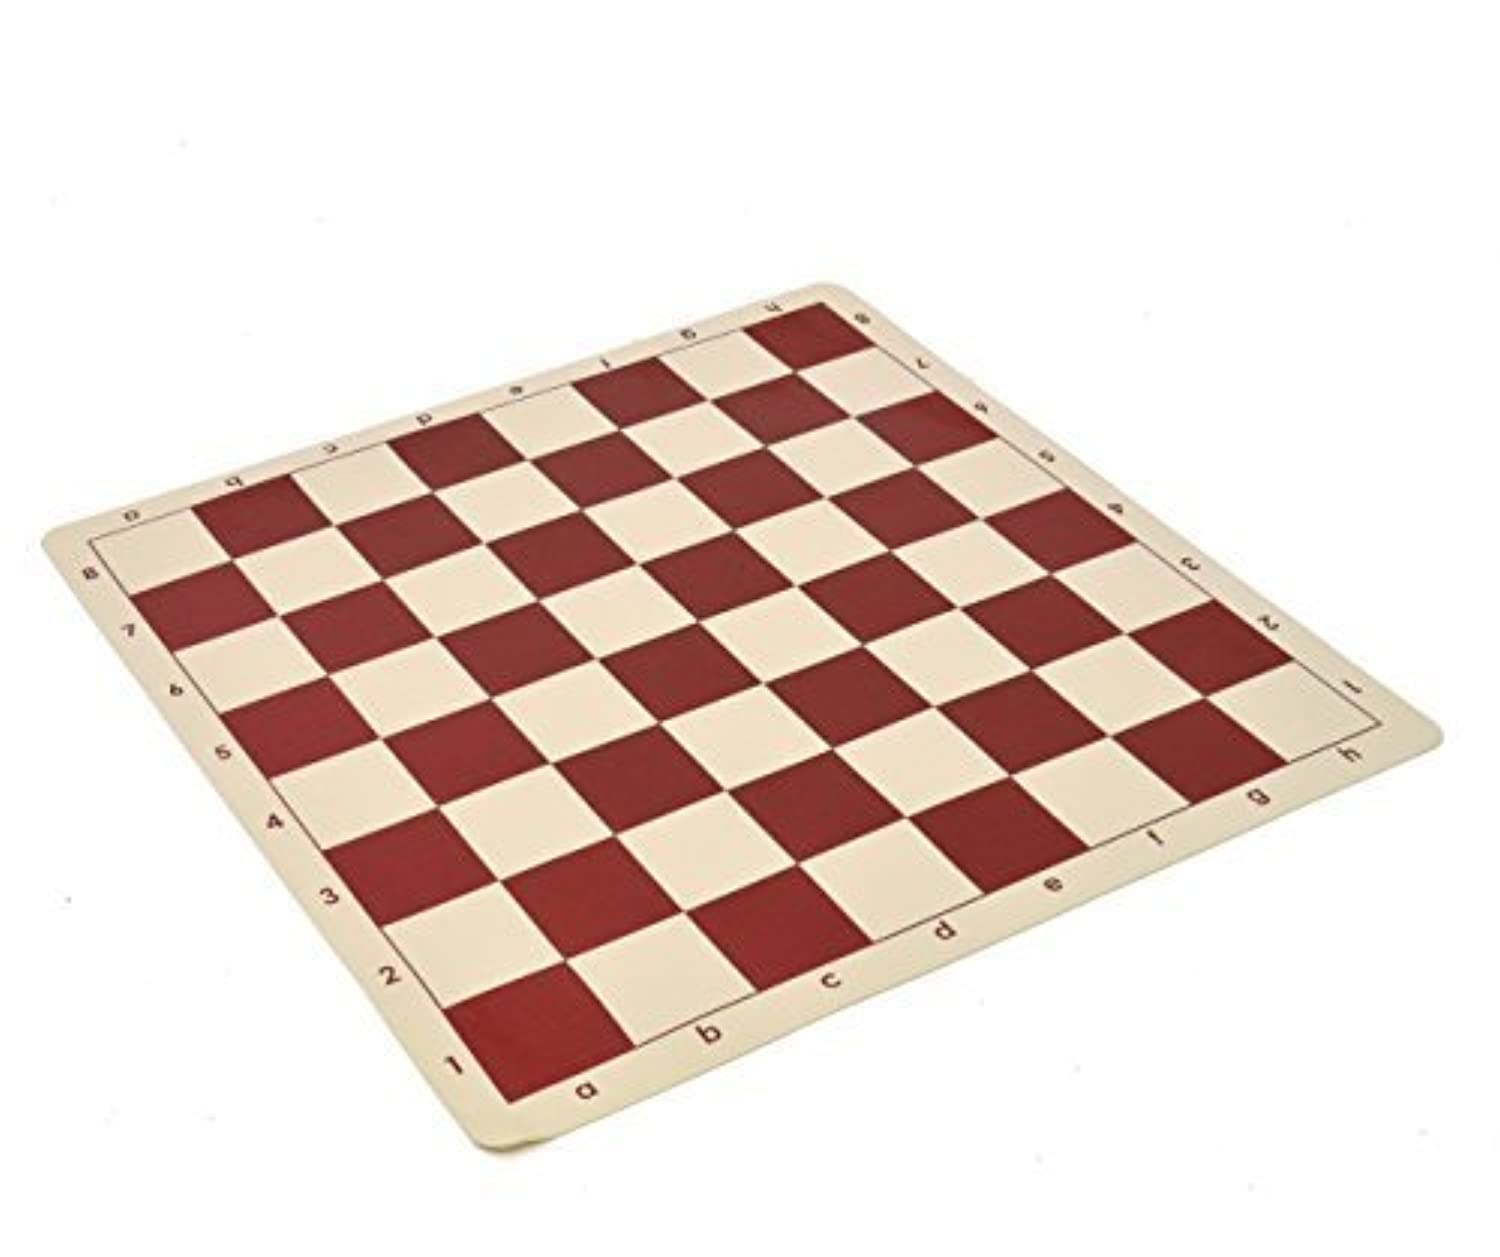 King Wholesale Chess Archer Chess Set Combo - Red Base with Black Canvas Bag